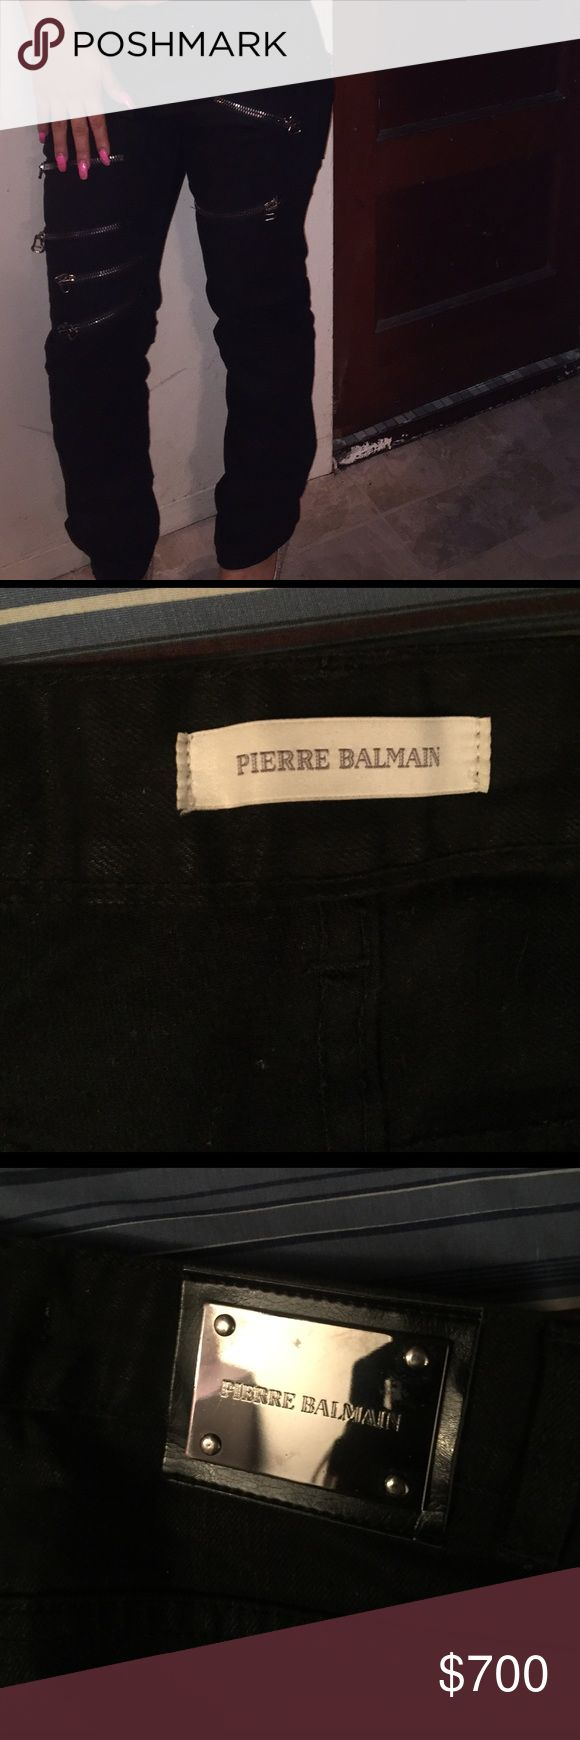 Balmain jeans Pierre Balmain Skinny jeans for women worn once in the picture shown , and it's real I can send more pictures Pierre Balmain Jeans Skinny